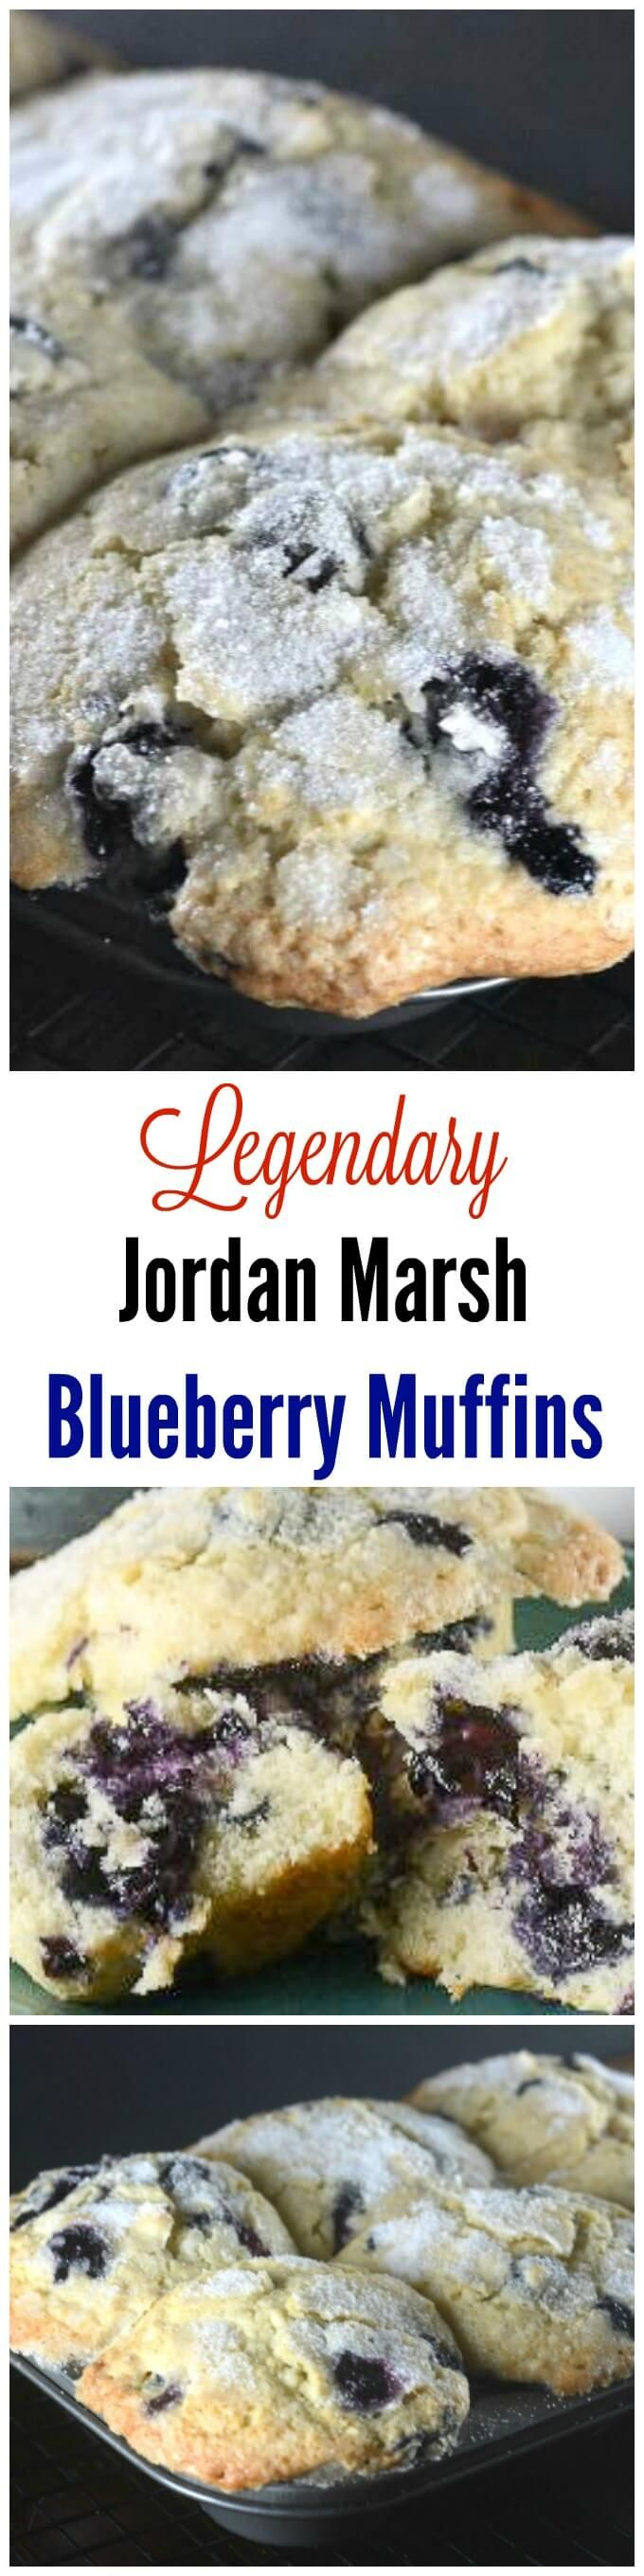 Jordan Marsh Legendary Blueberry Muffins are the same blueberry muffins that generations of families enjoyed for decades at the Jordan Marsh department stores in Boston and New England. ~ http://FlavorMosaic.com